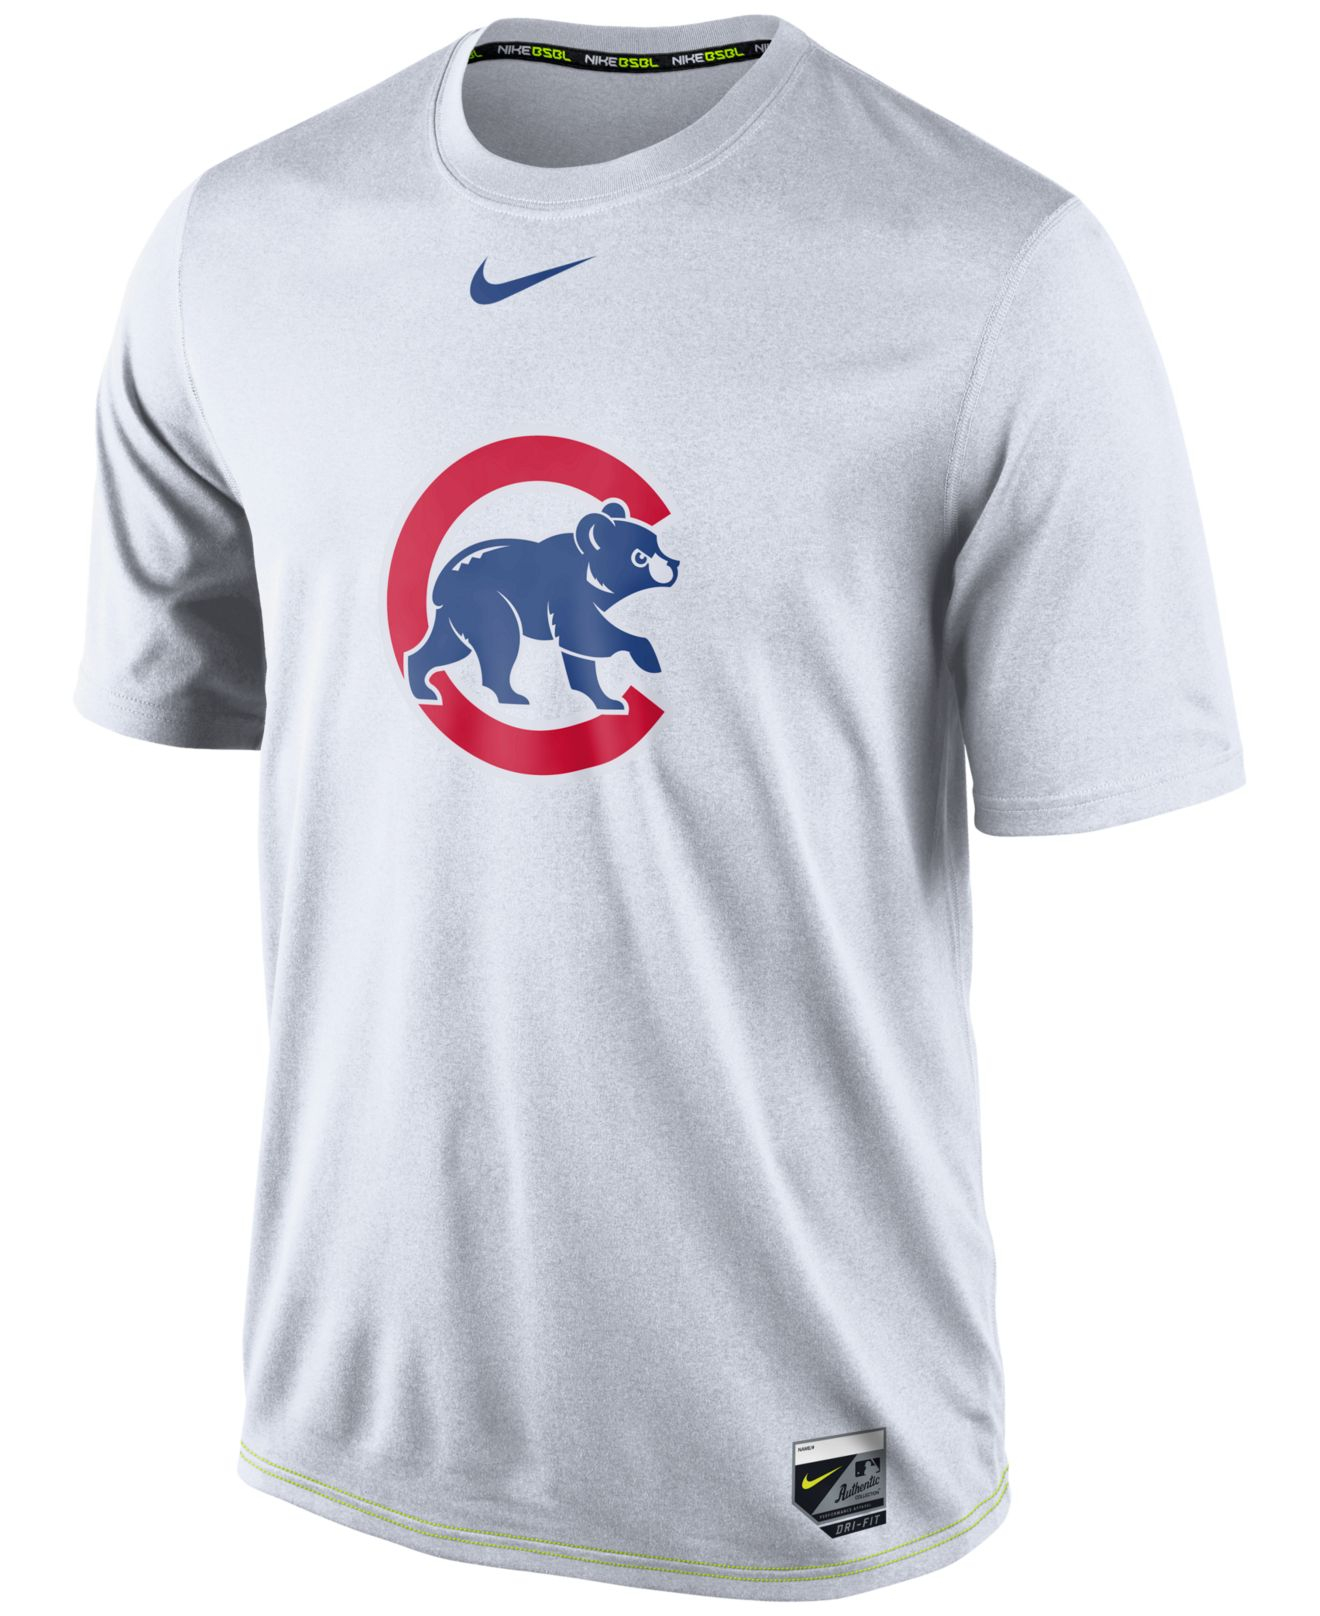 92f295ca0 Nike Dri Fit Shirts Sports Authority - Cotswold Hire